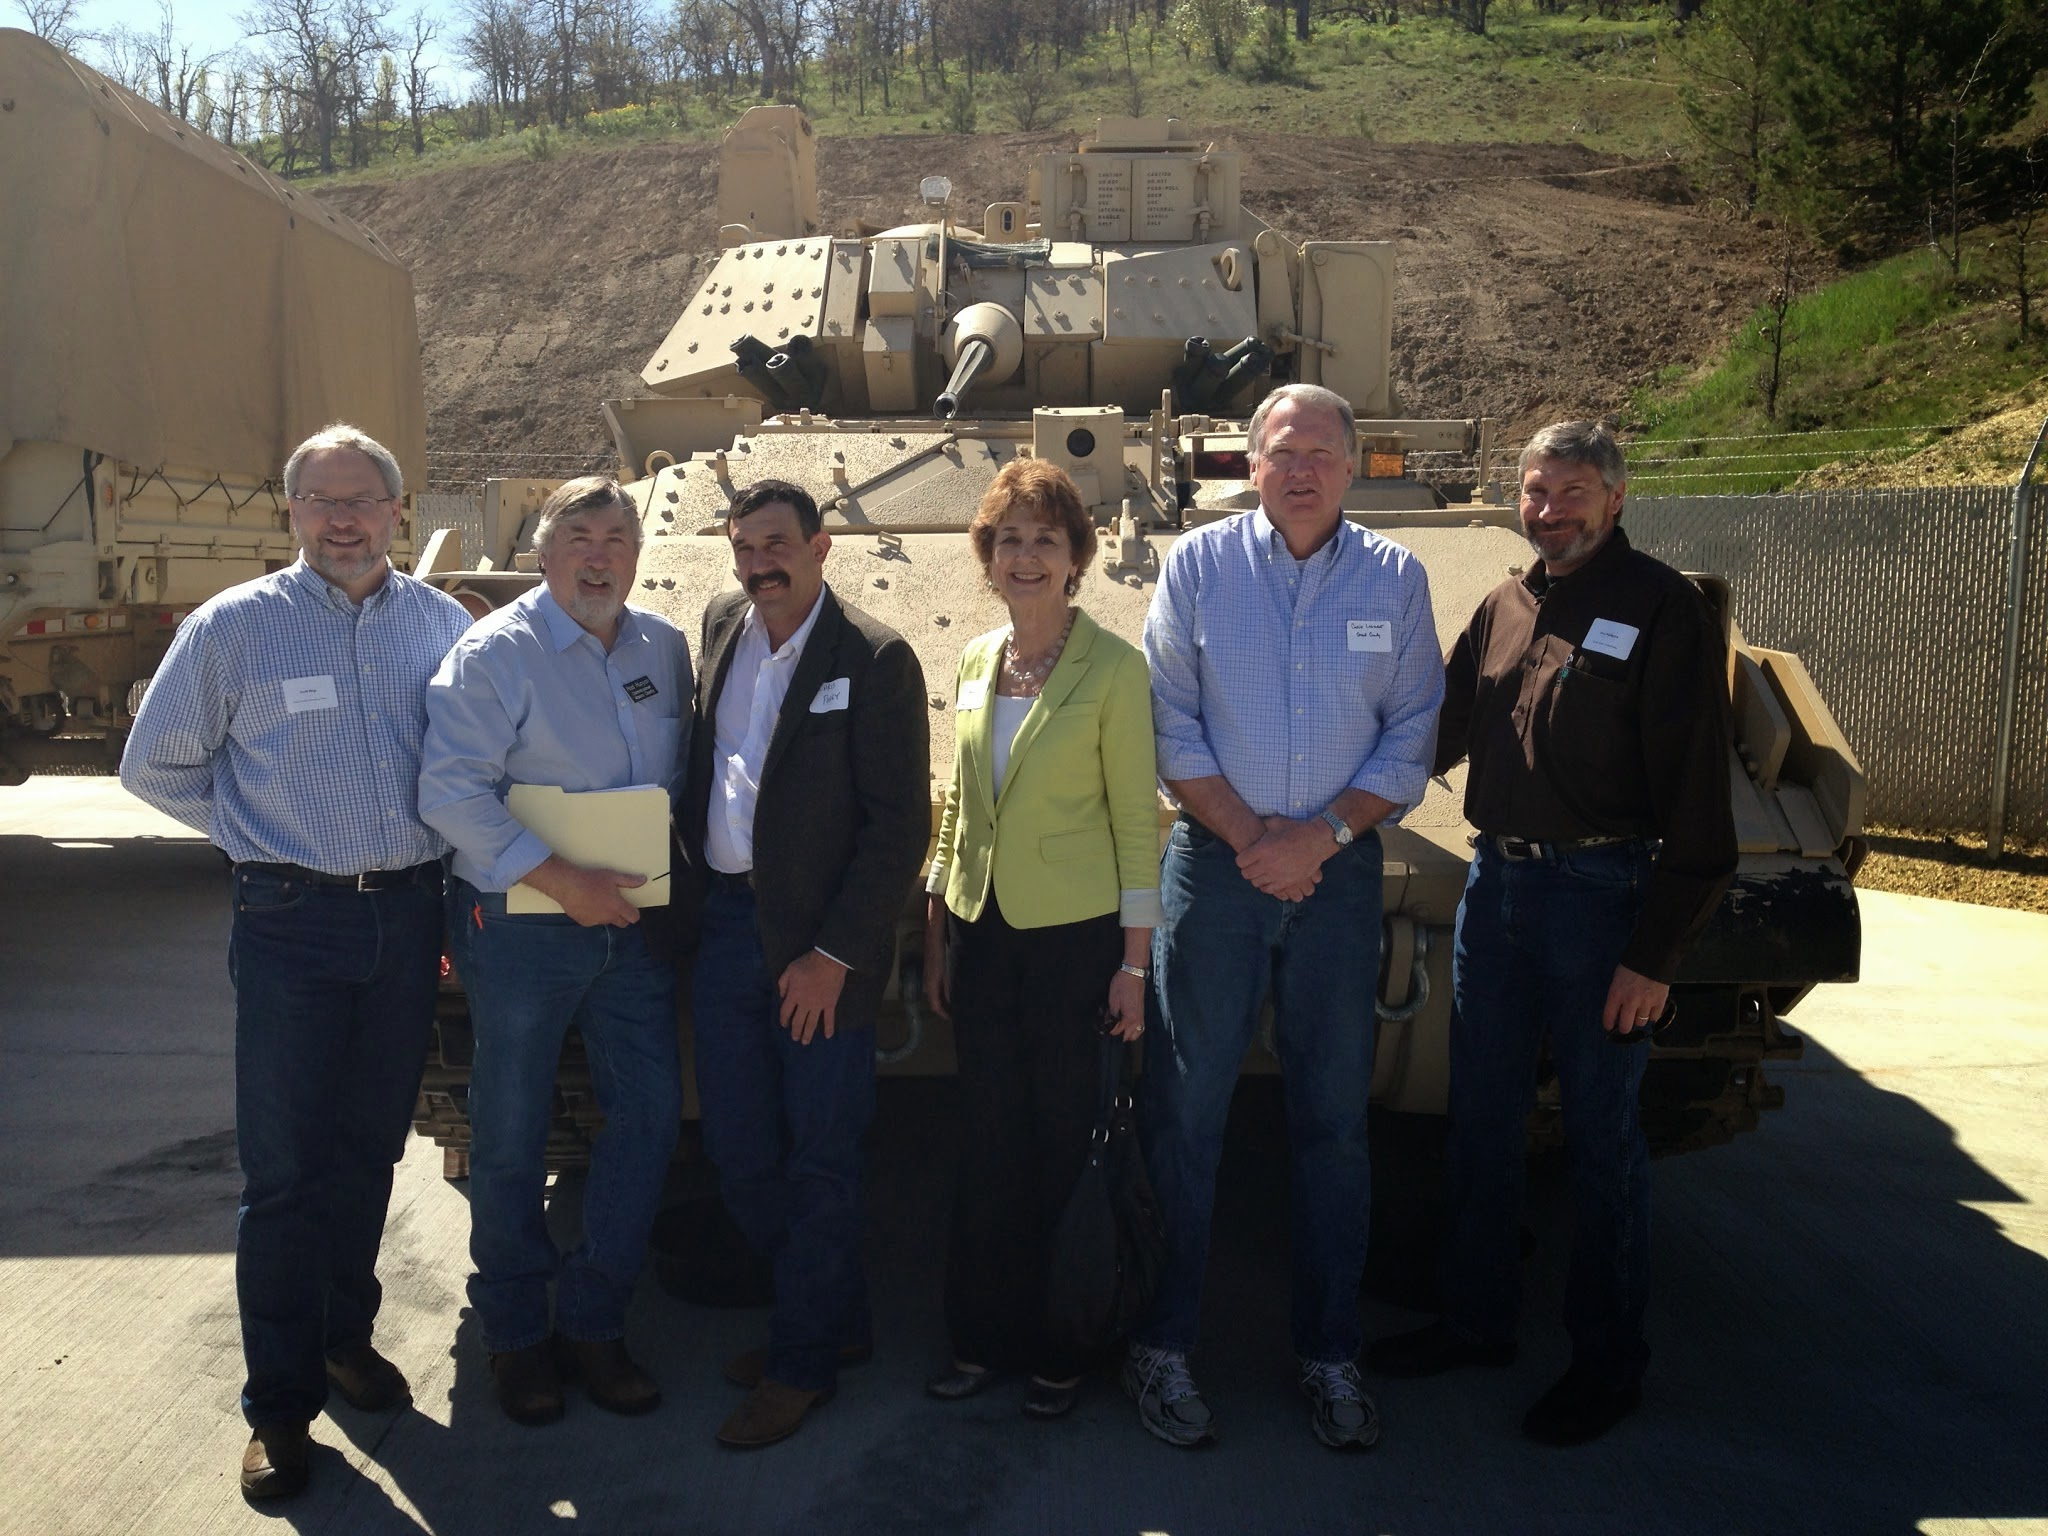 County Commissioners in front of a tank